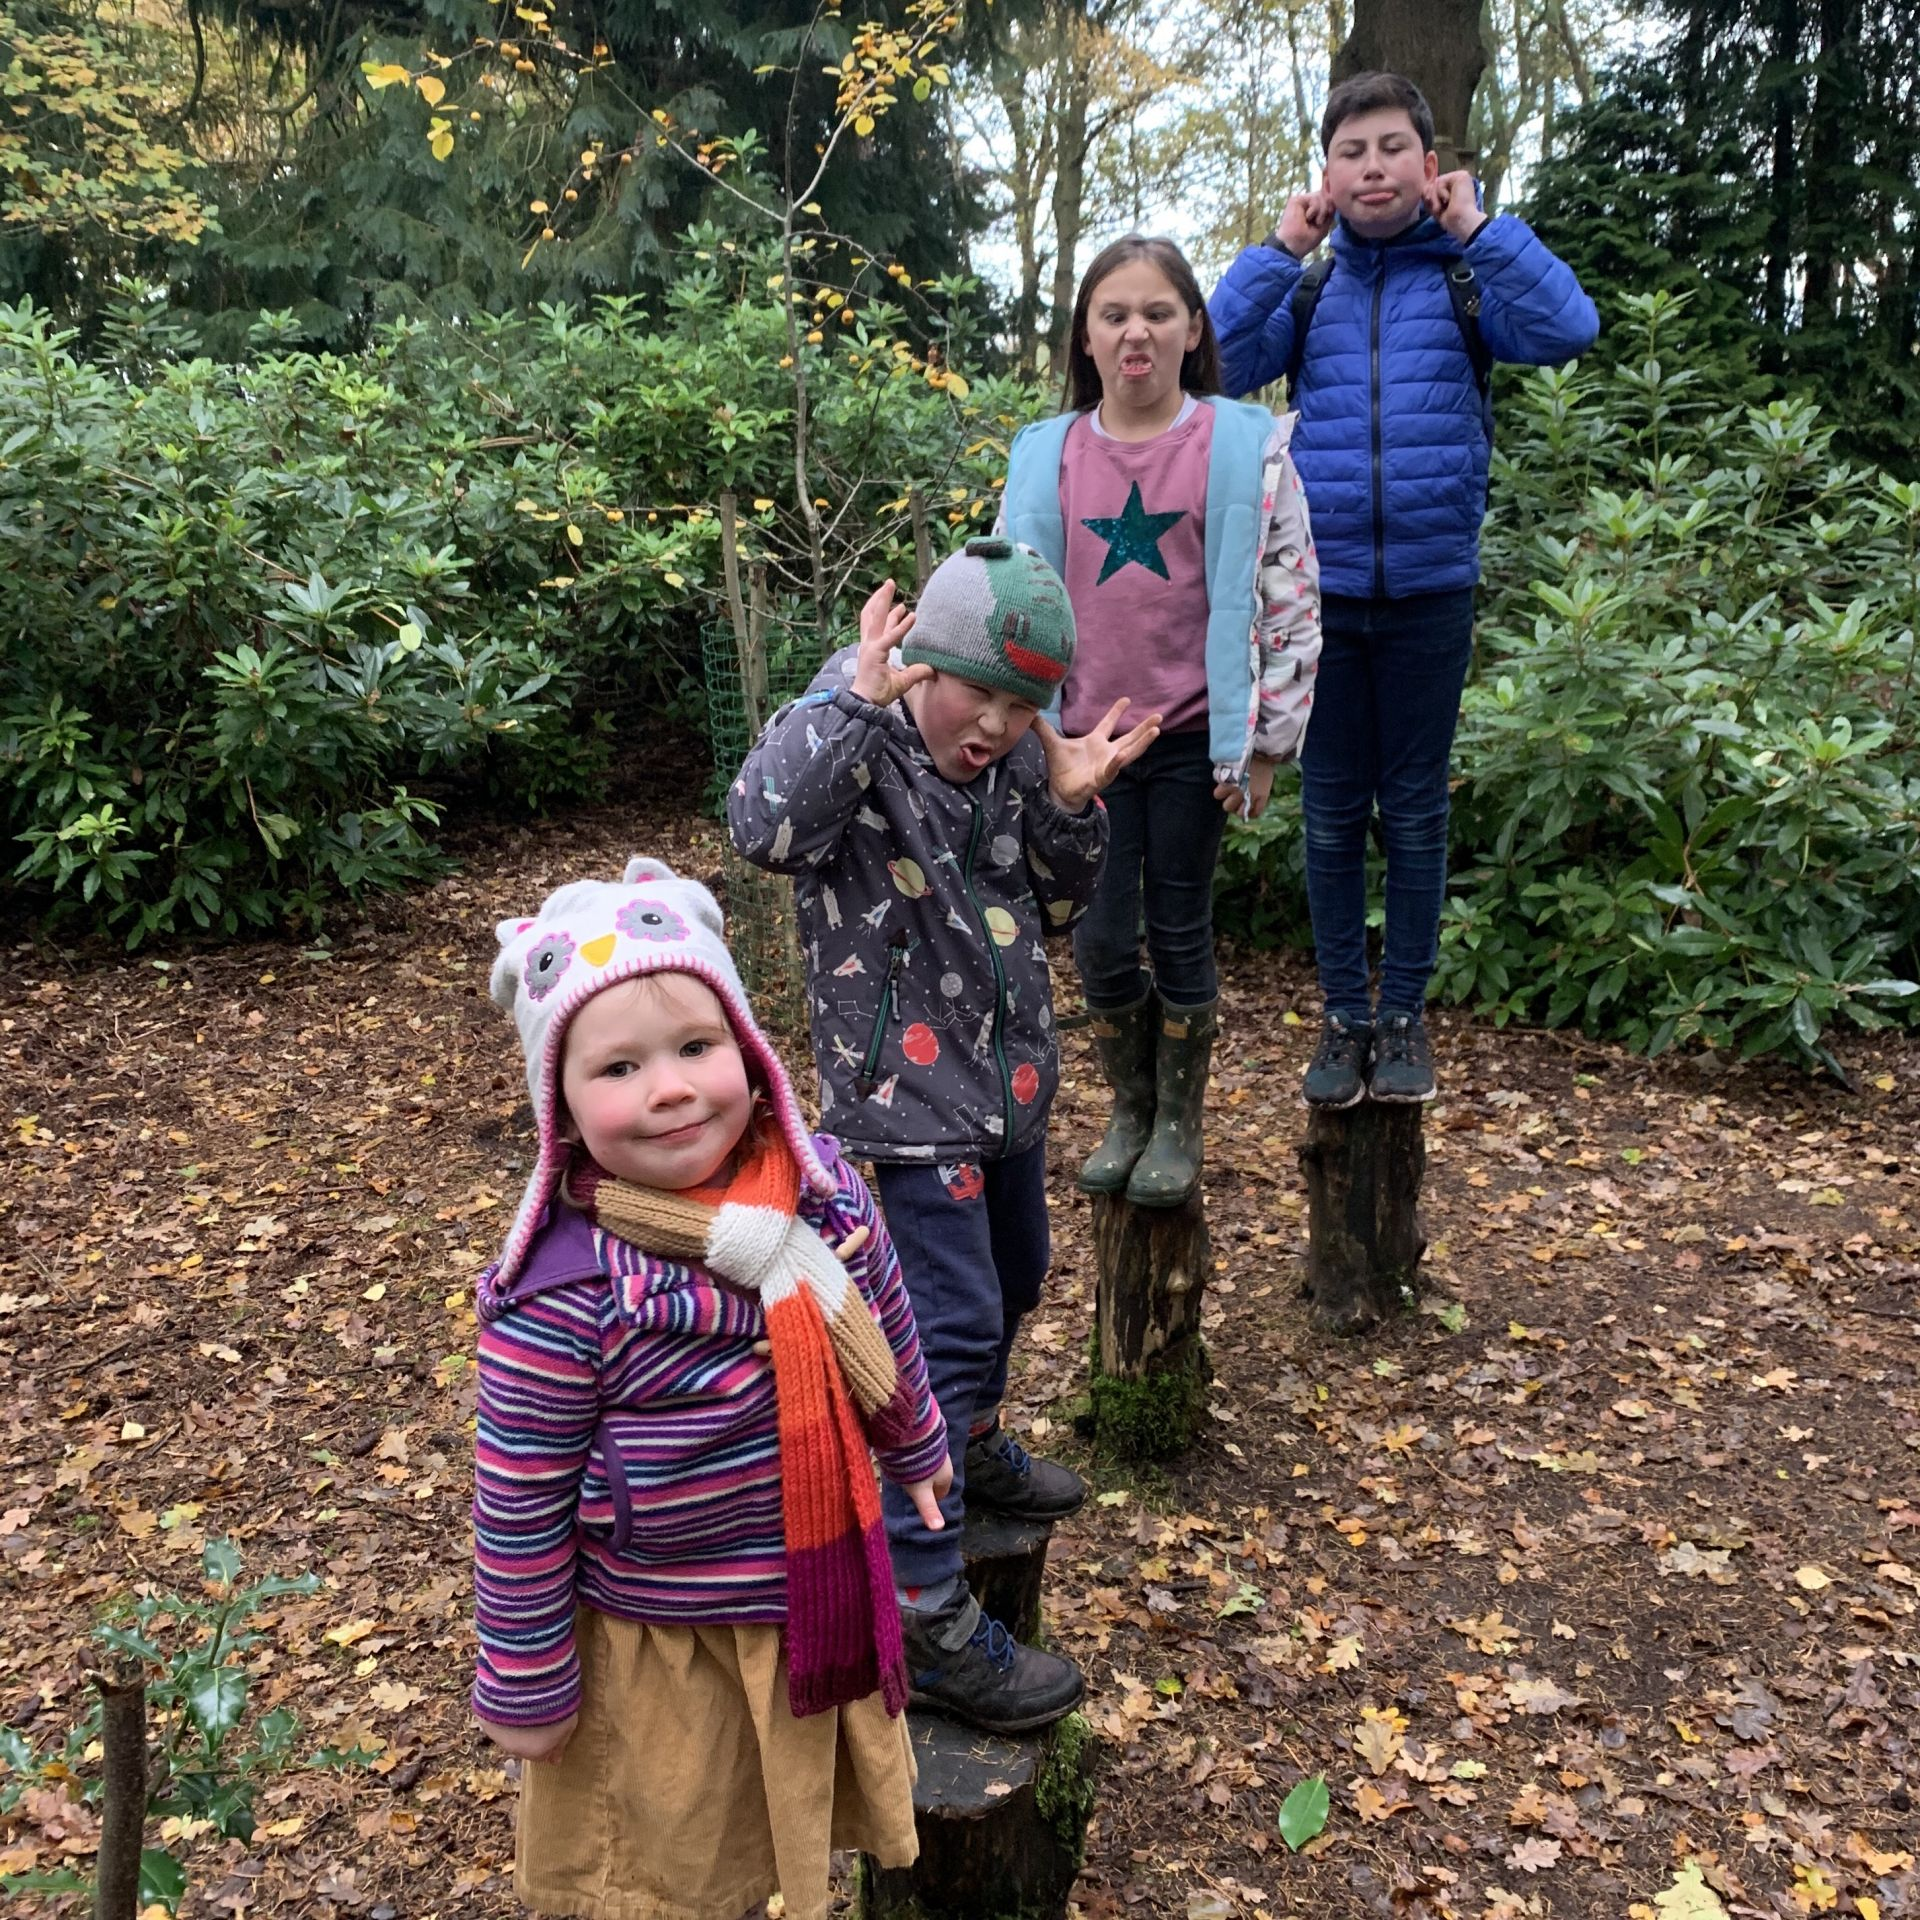 4 children pulling silly faces stood on tree stumps